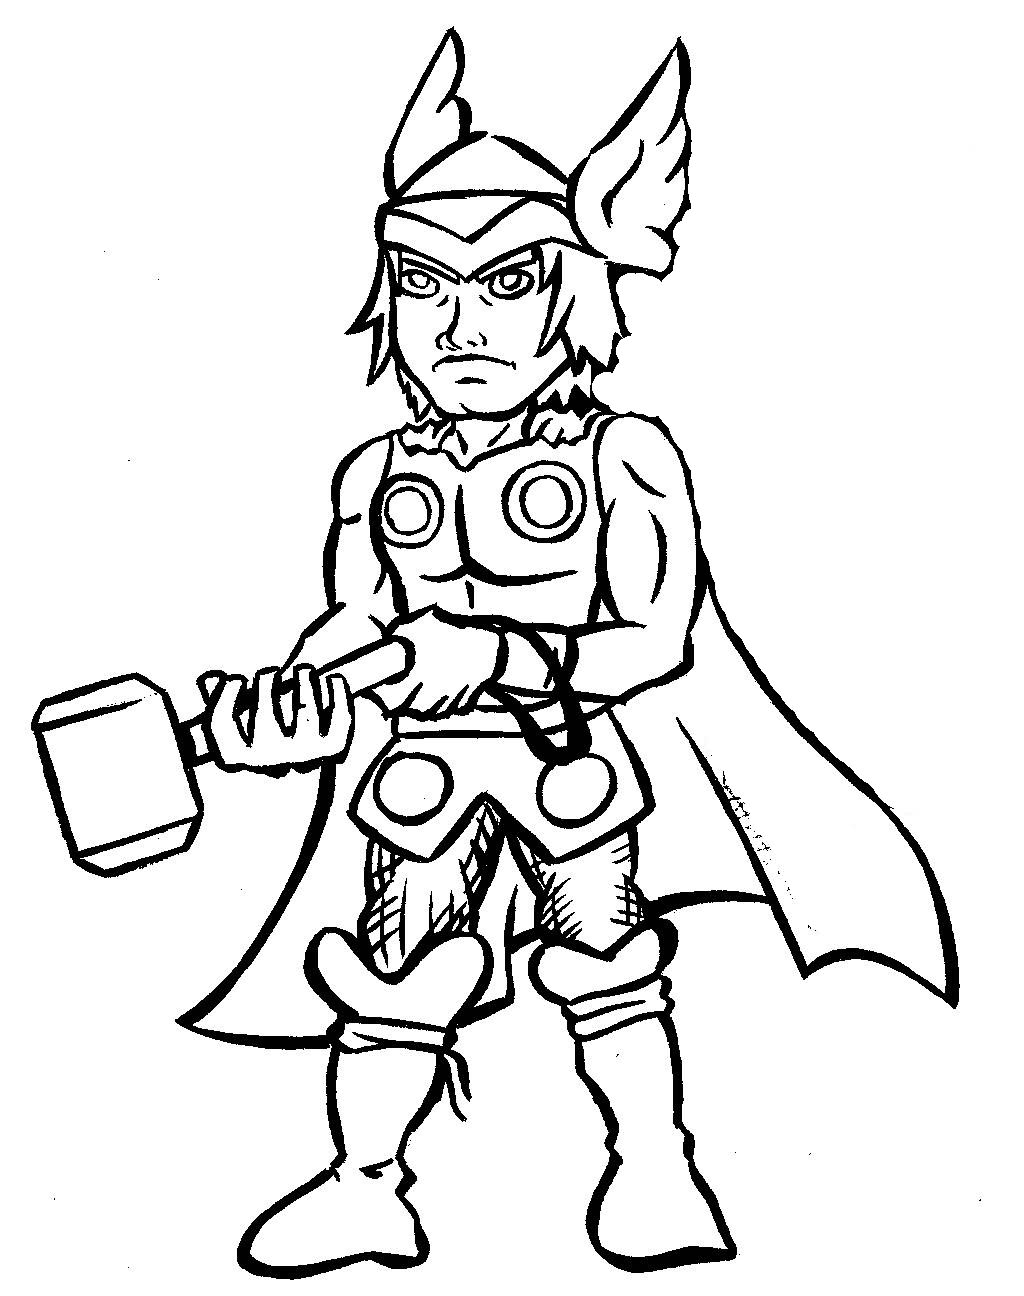 thor coloring pages printable thor coloring pages for kids cool2bkids thor pages coloring